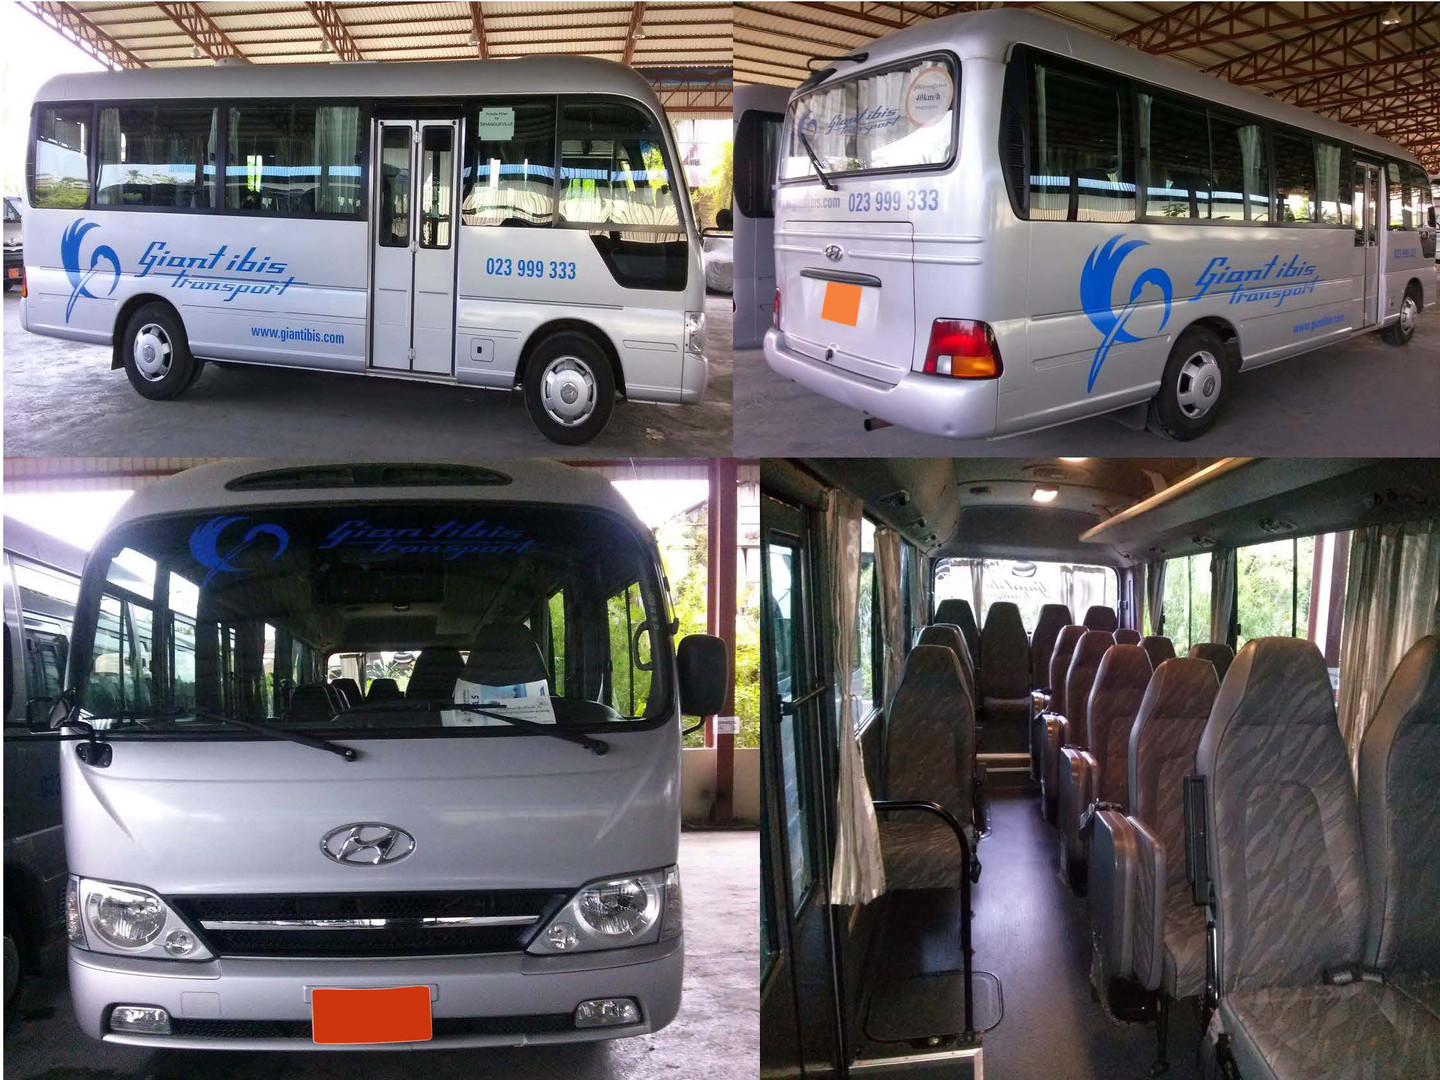 2012 Hyundai County 20-seats edited.jpg